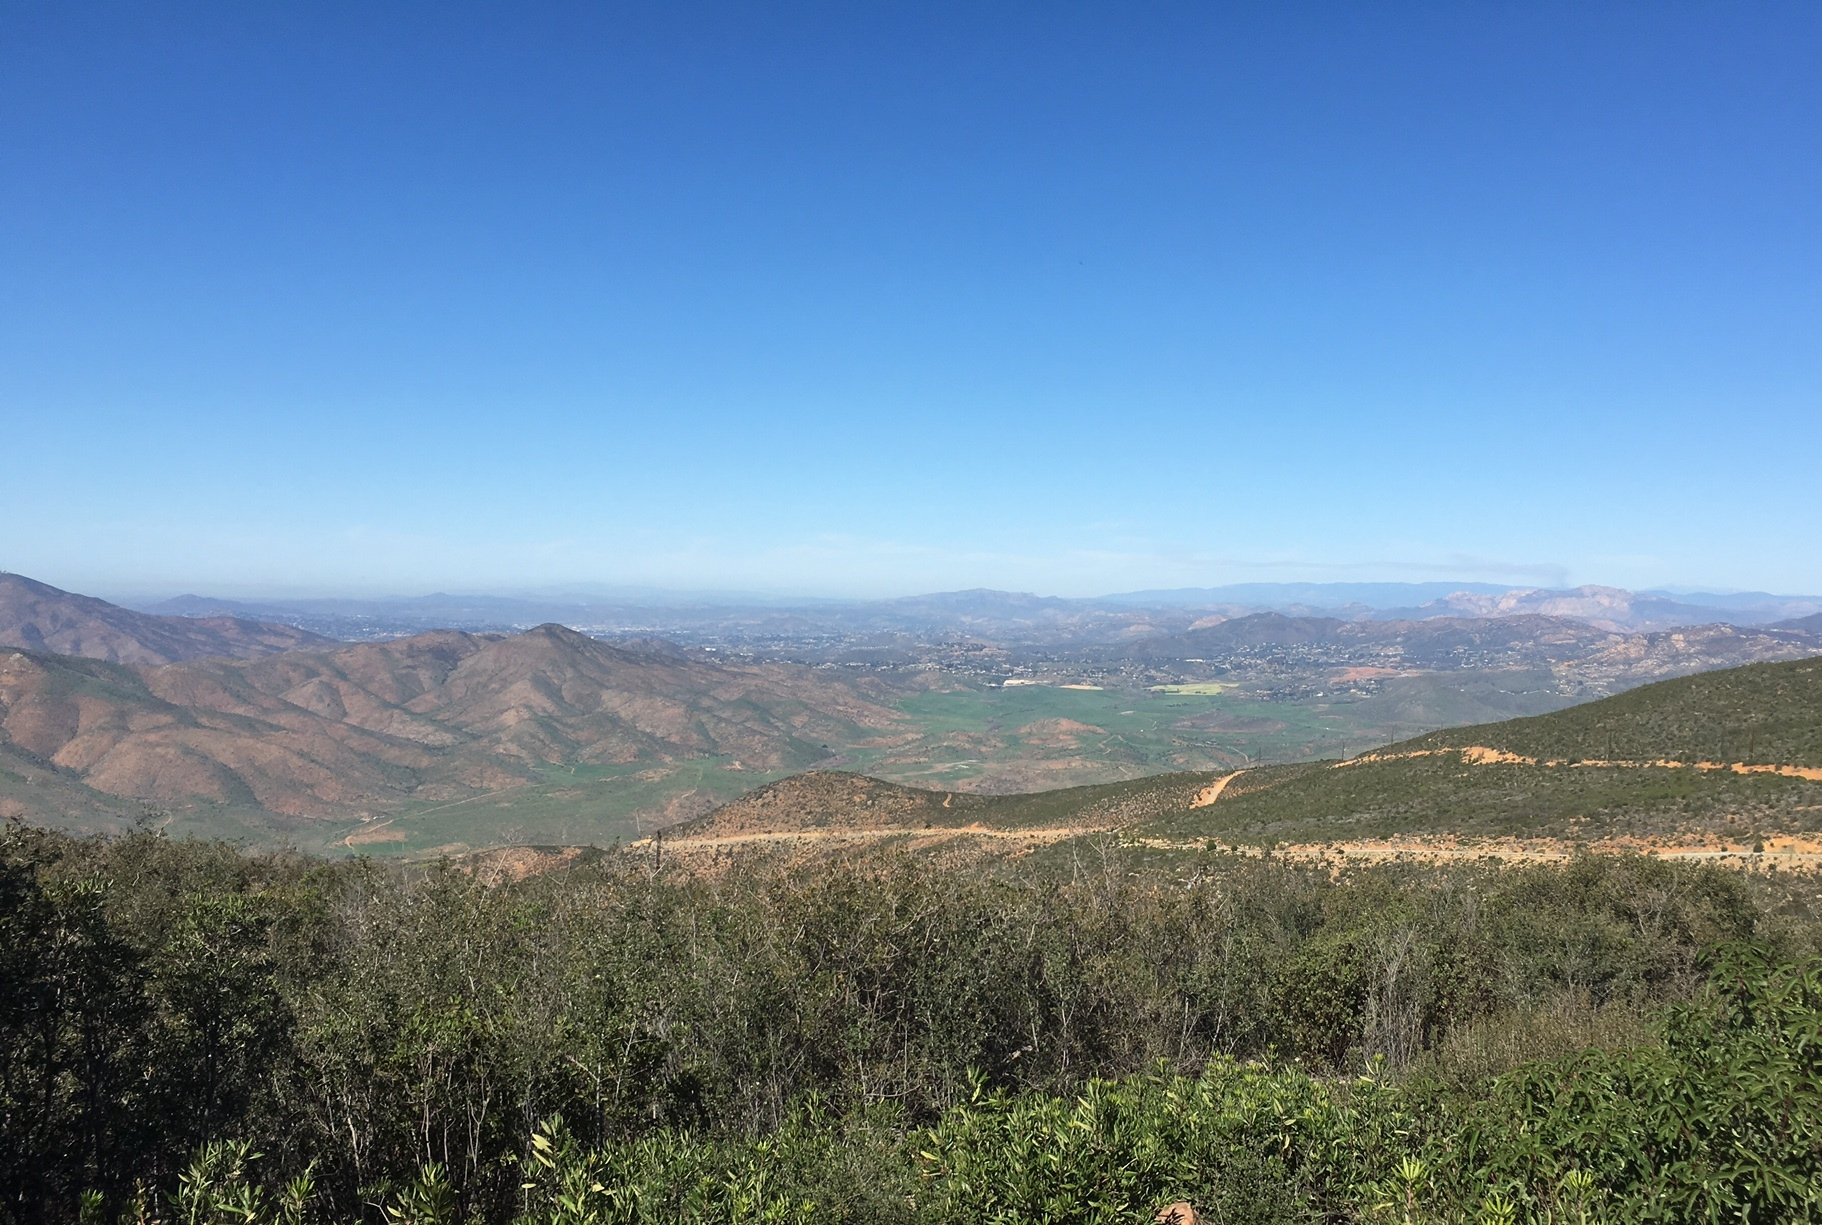 A view looking north from a portion of Otay Mountain. Otay Mountain is visible to much of the county.